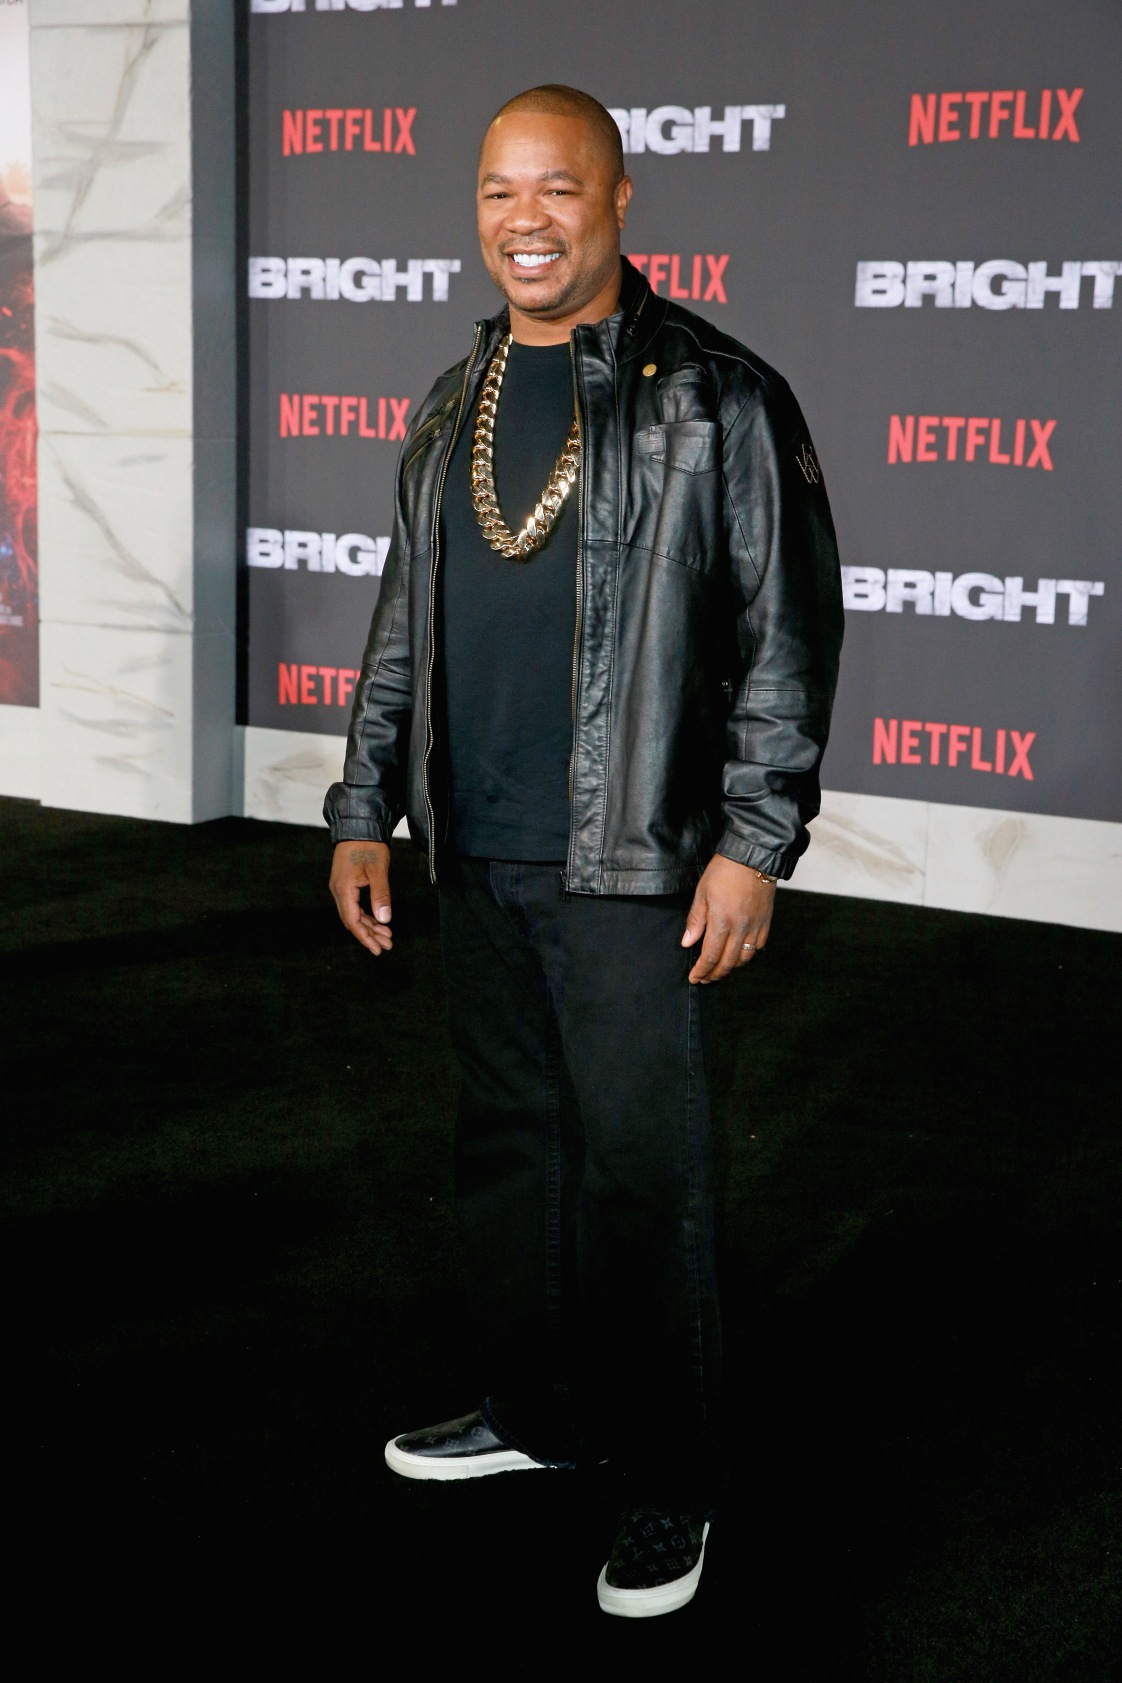 Xzibit attends the LA Premiere of Netflix Films 'BRIGHT' on December 13, 2017 in Los Angeles, California.